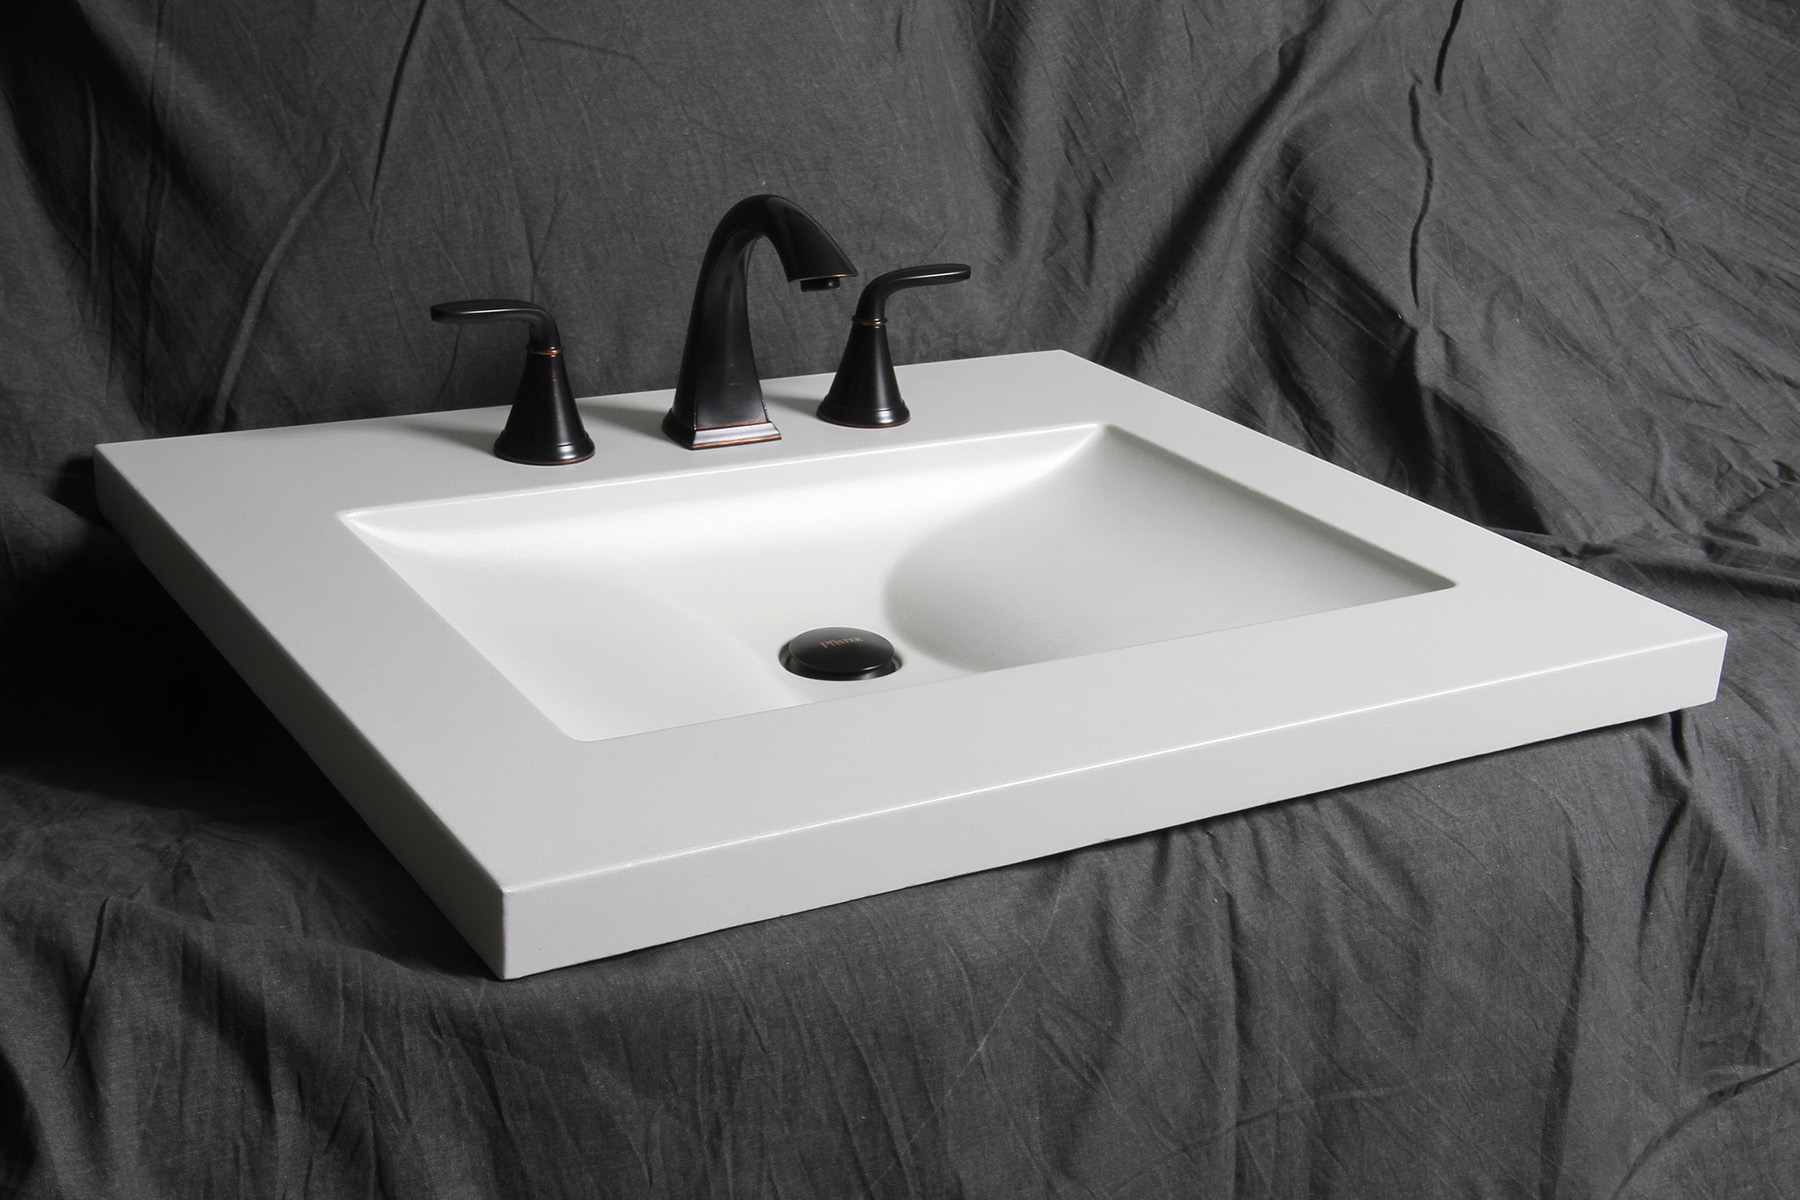 No one would ever guess this stunning sink was concrete if you didn't tell them.